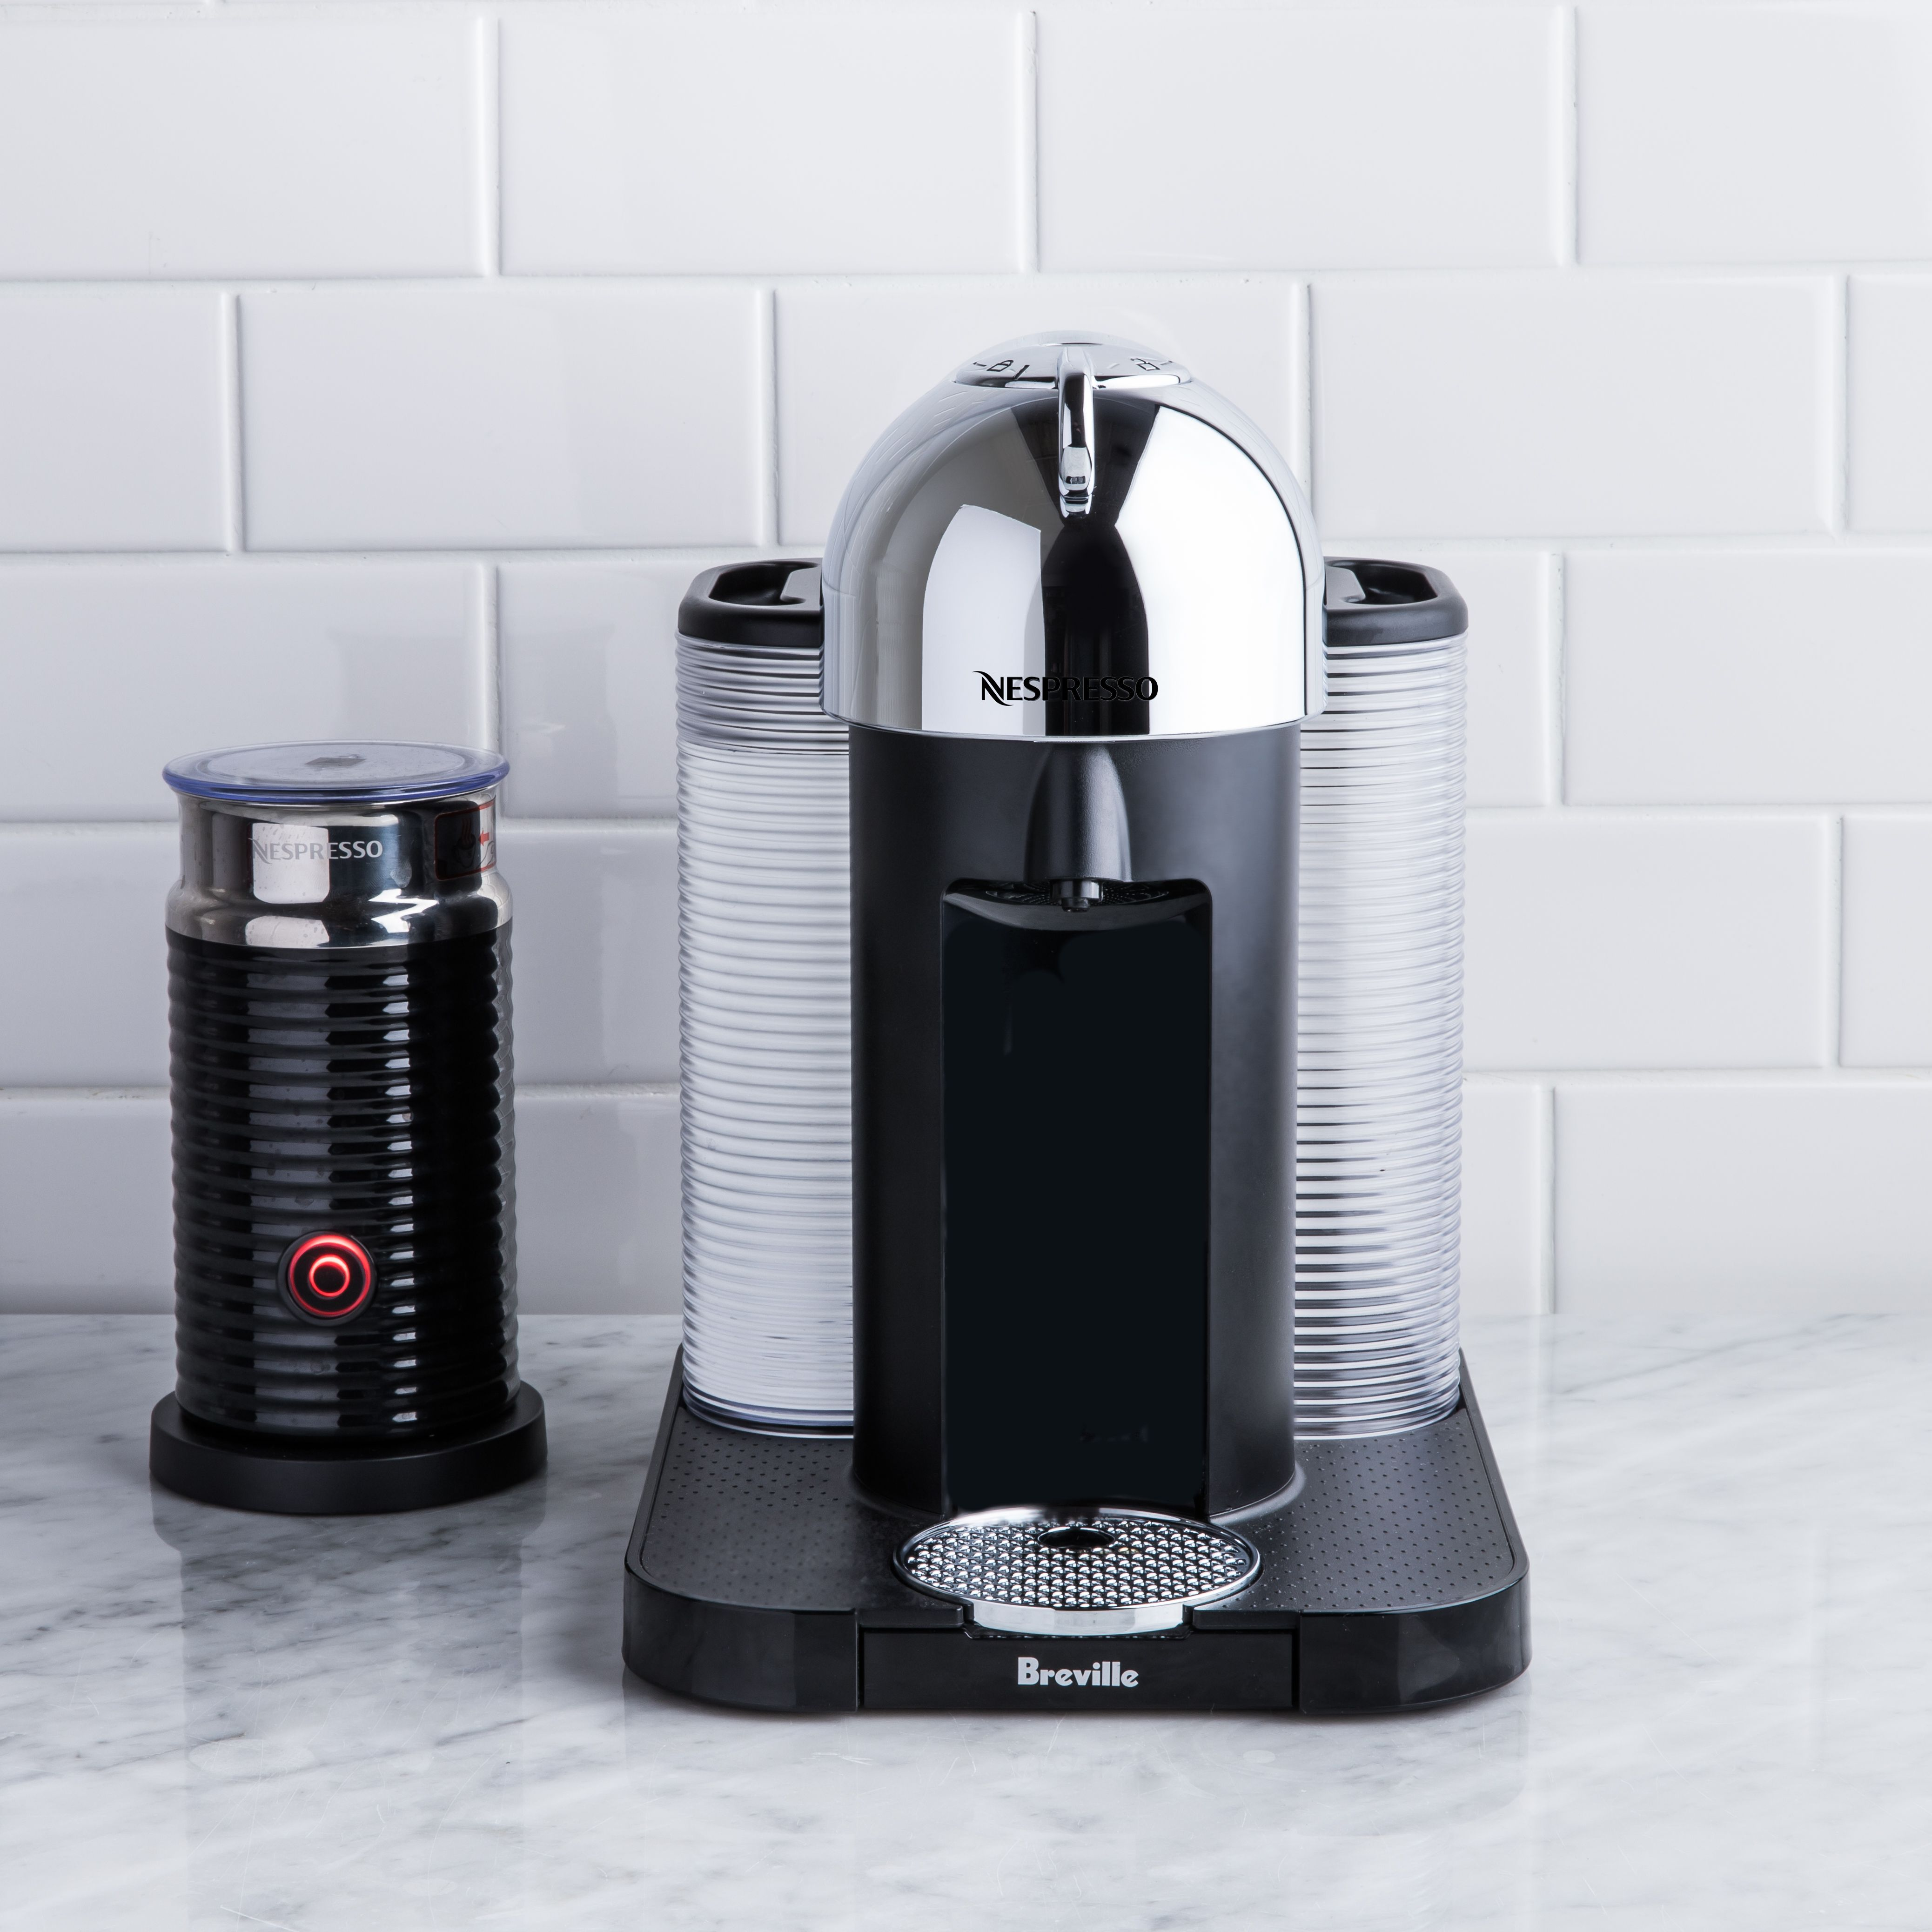 nespresso maker with milk frother